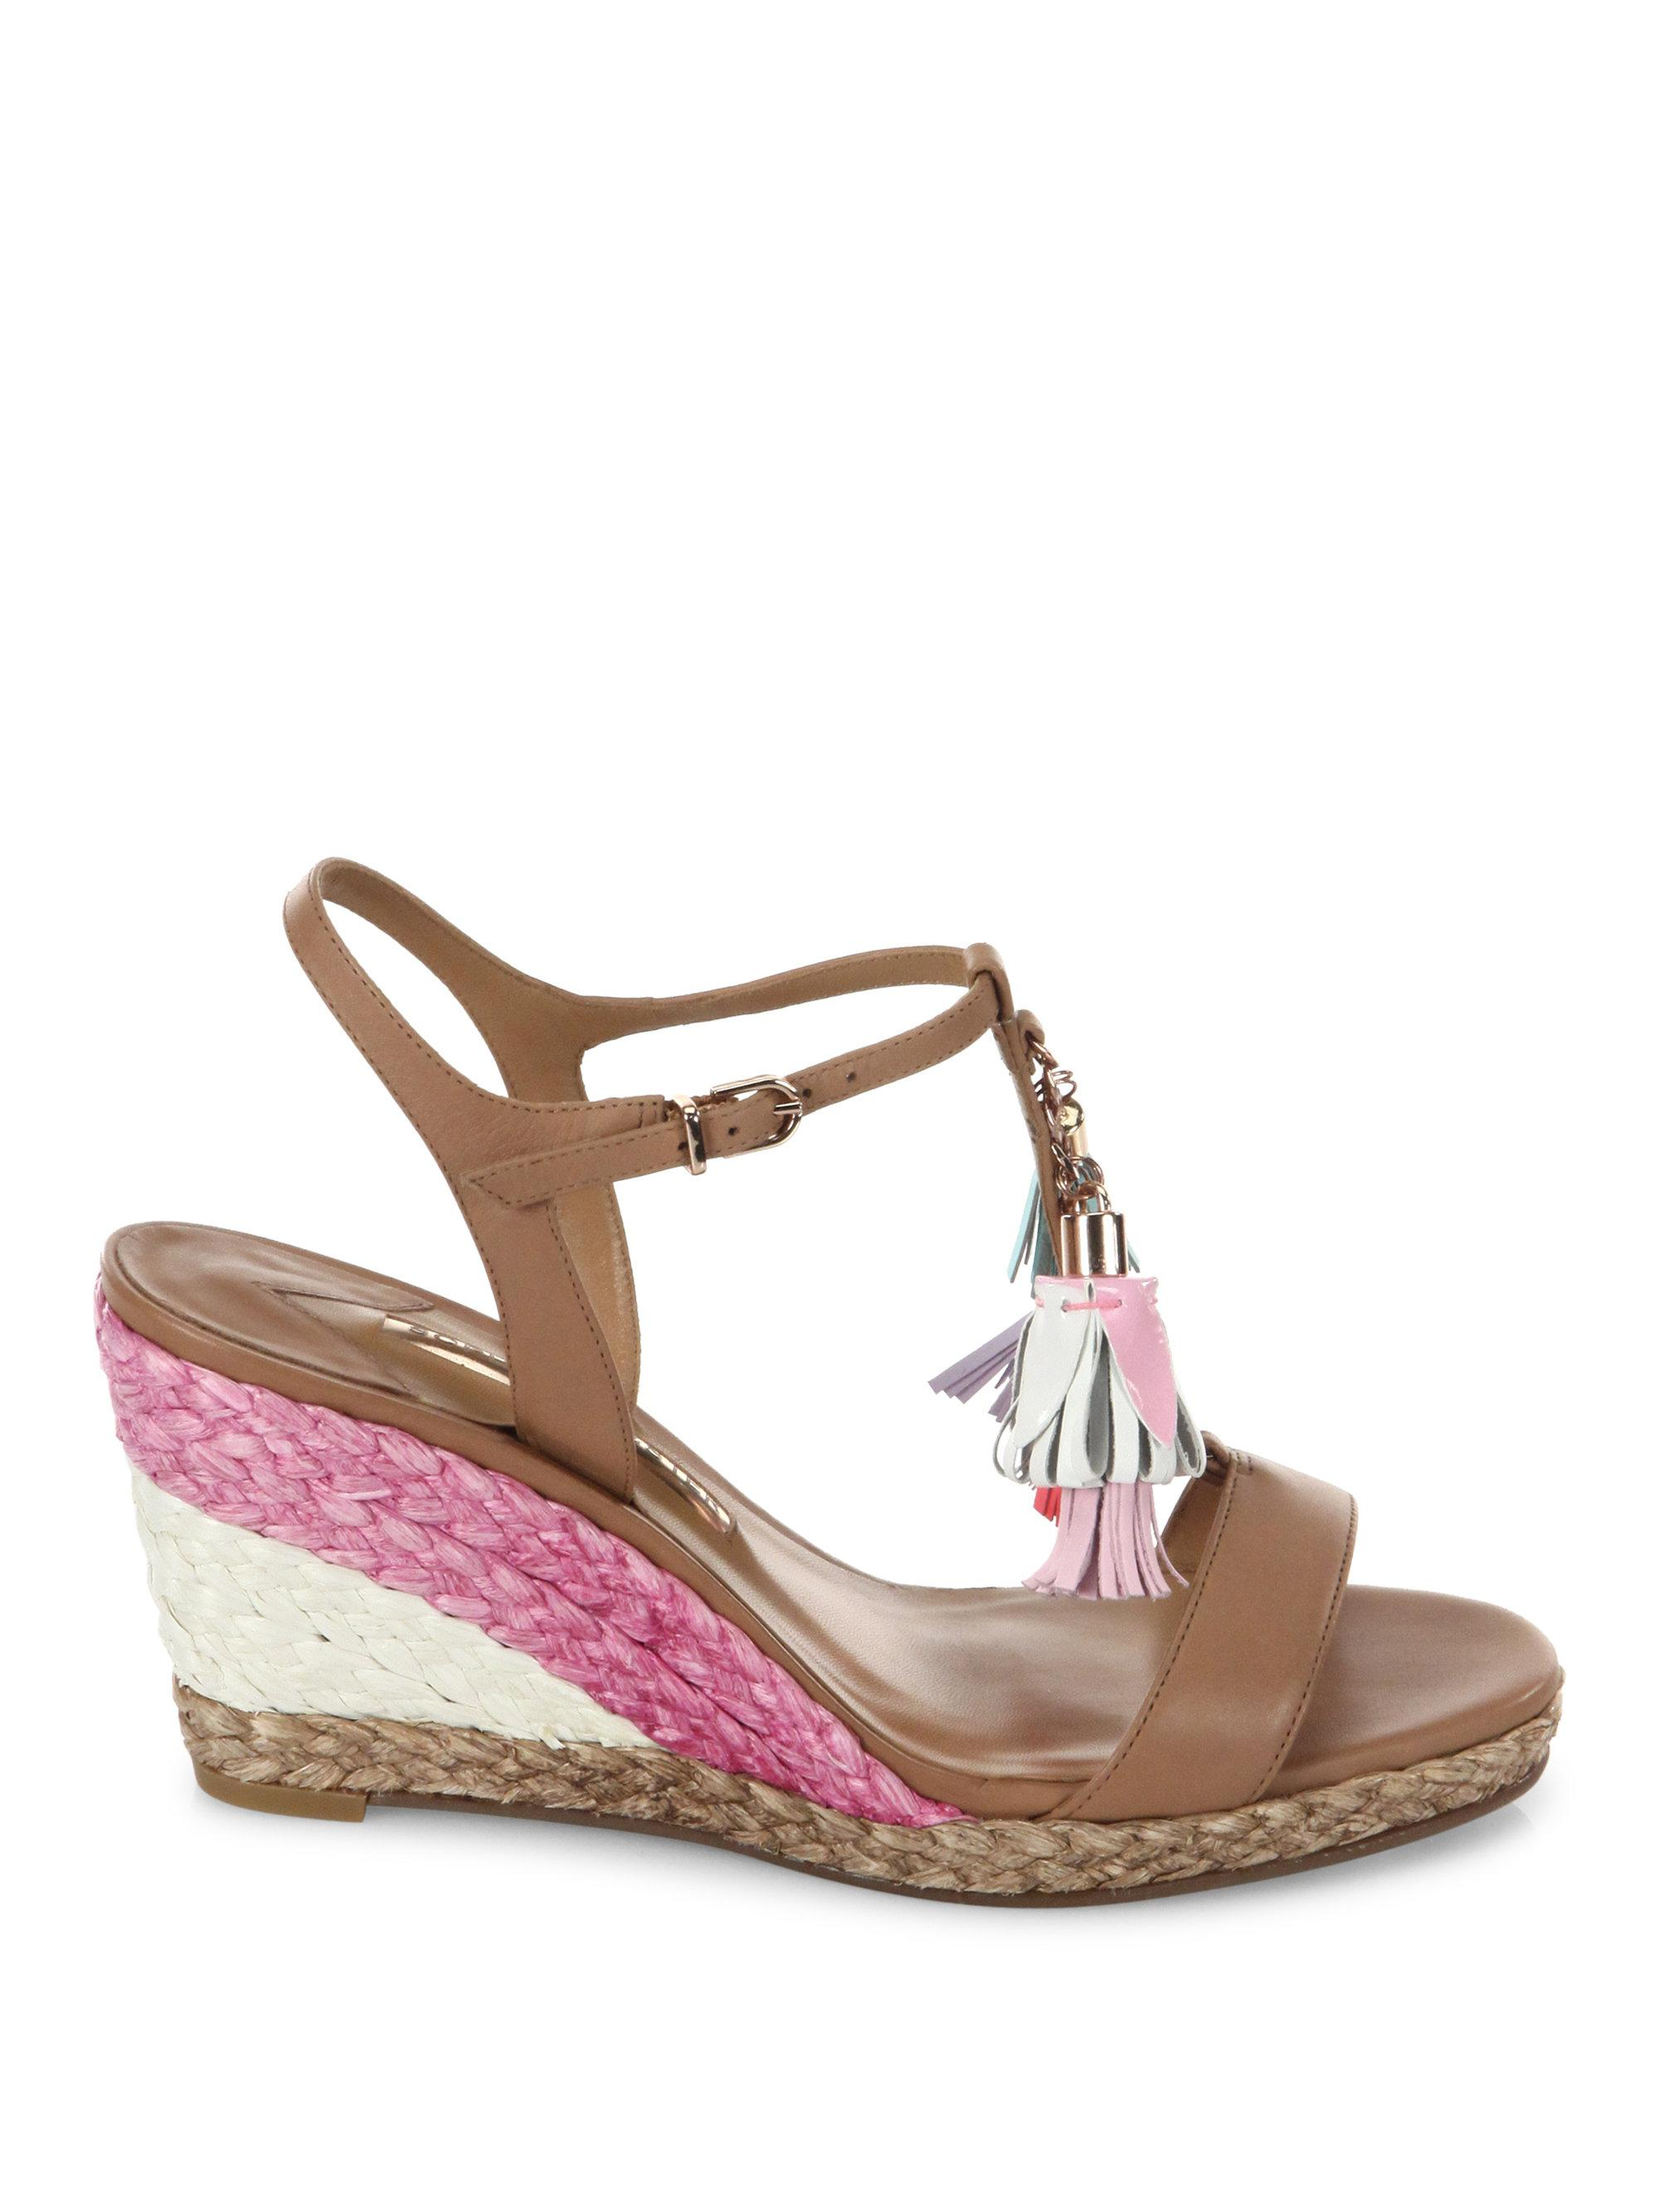 Gallery. Previously sold at: Saks Fifth Avenue · Women's Sophia Webster  Lucita